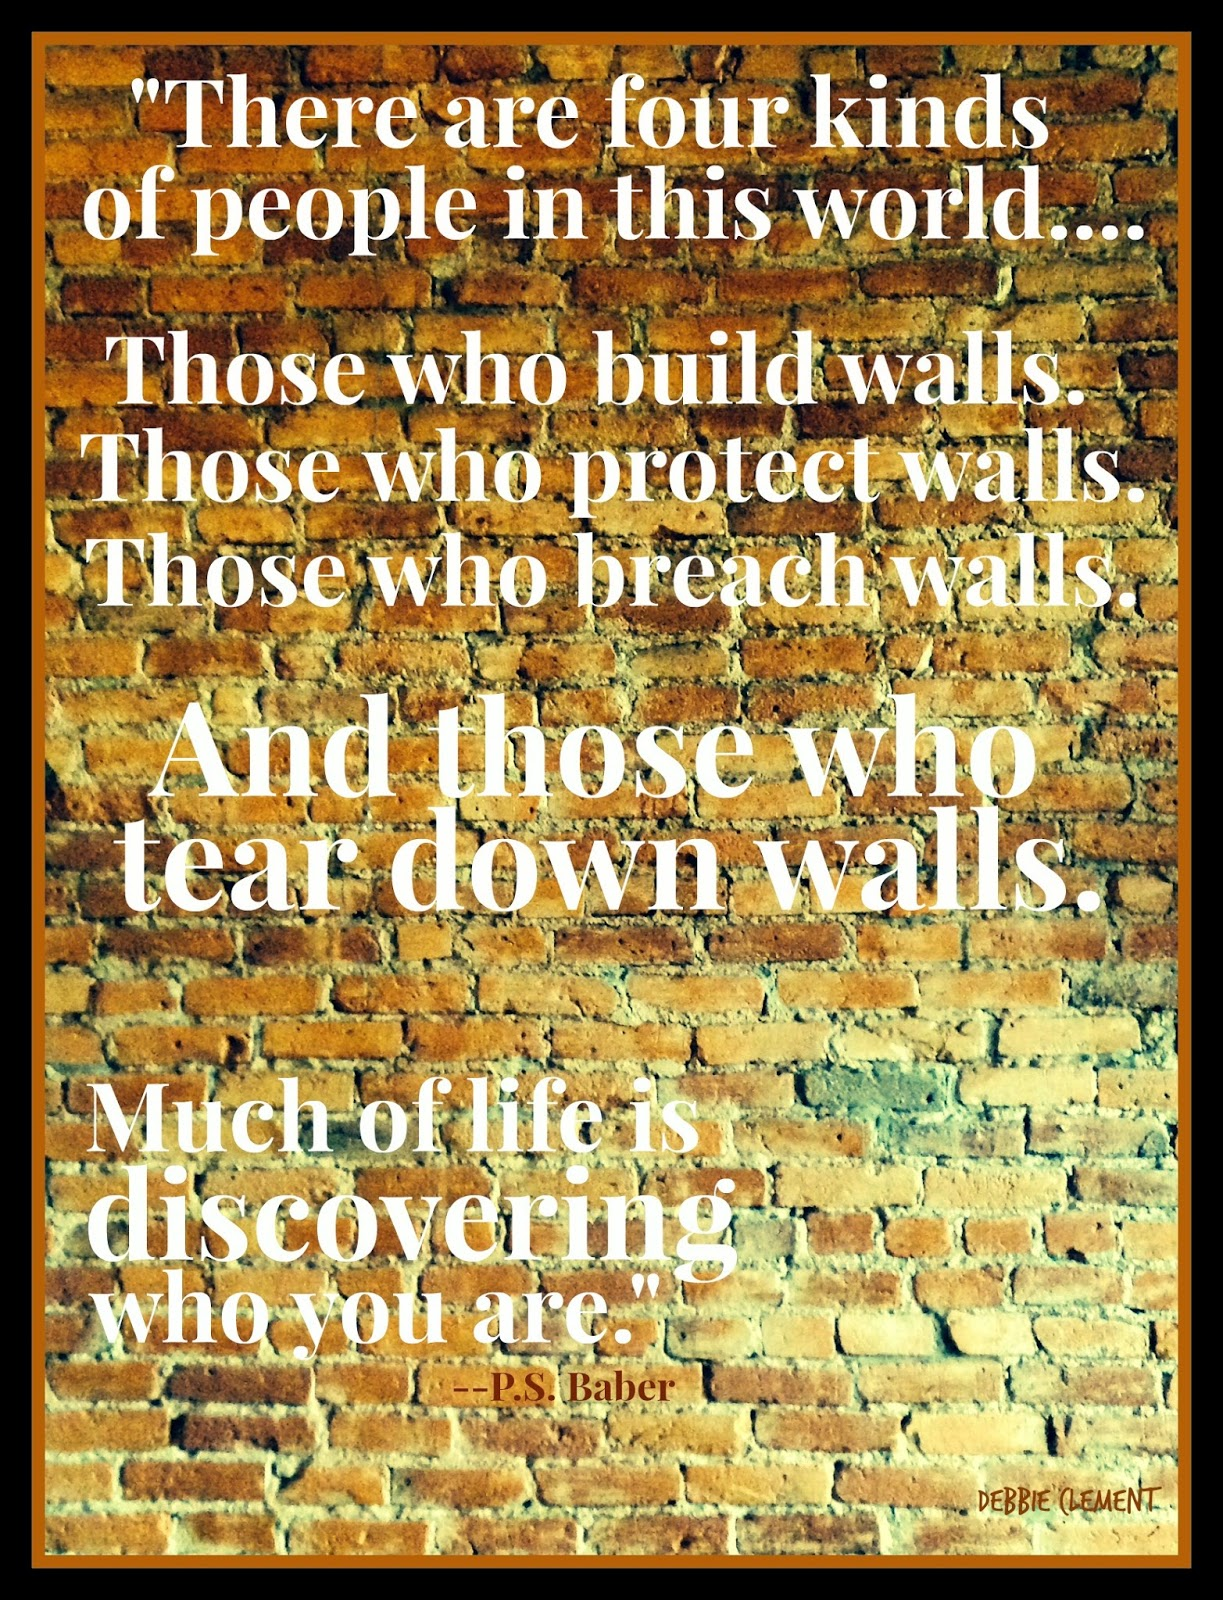 Wall quote about 'Four Kinds of People' via RainbowsWithinReach